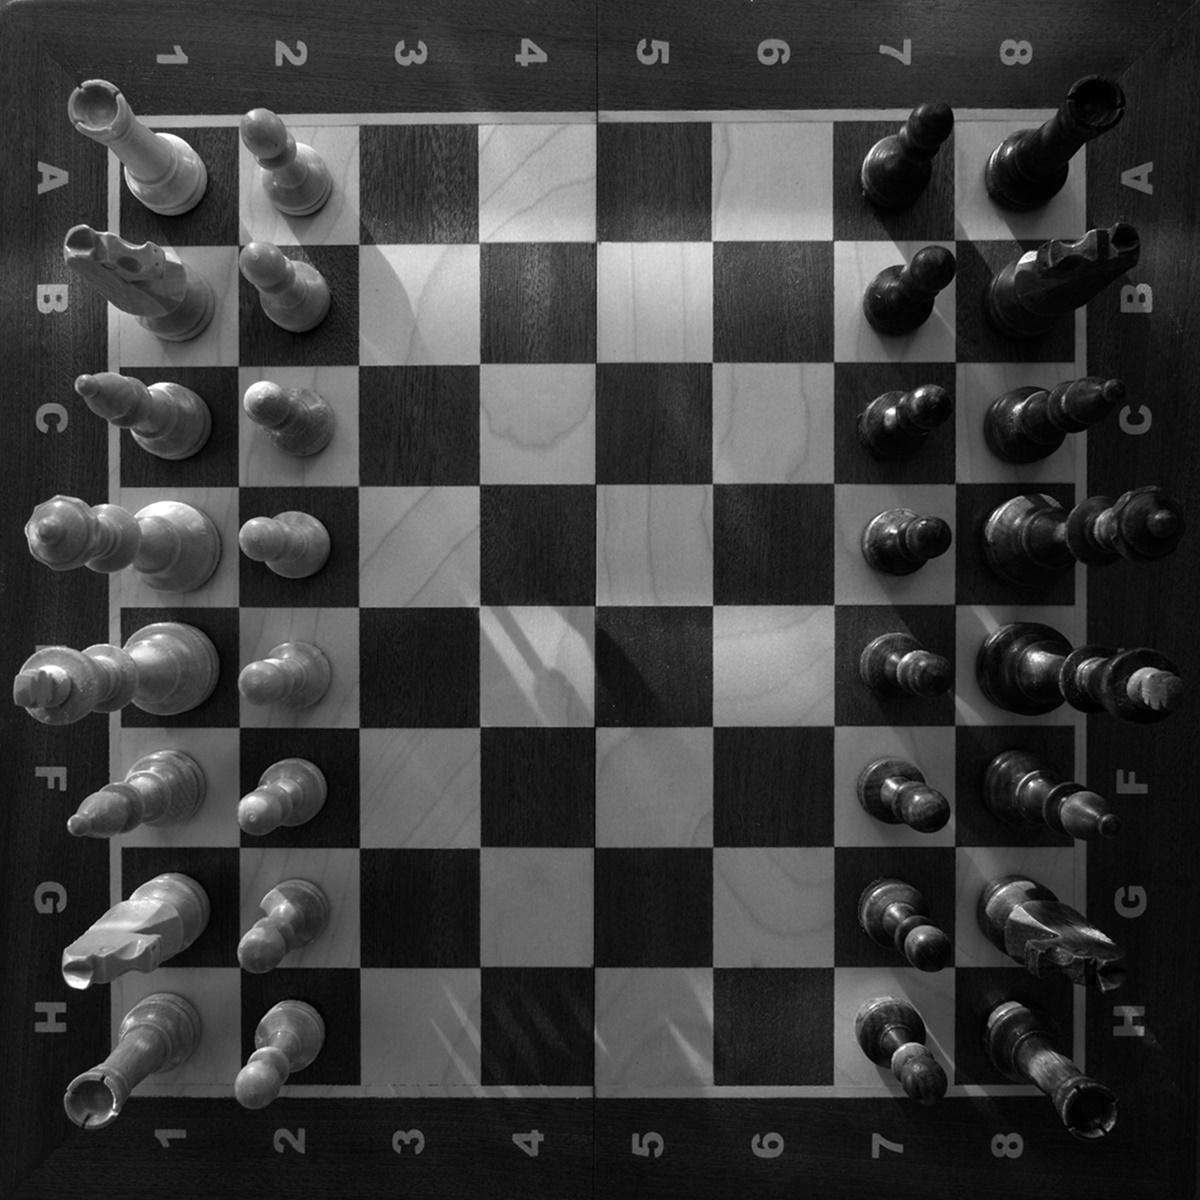 Overhead view of a chess set